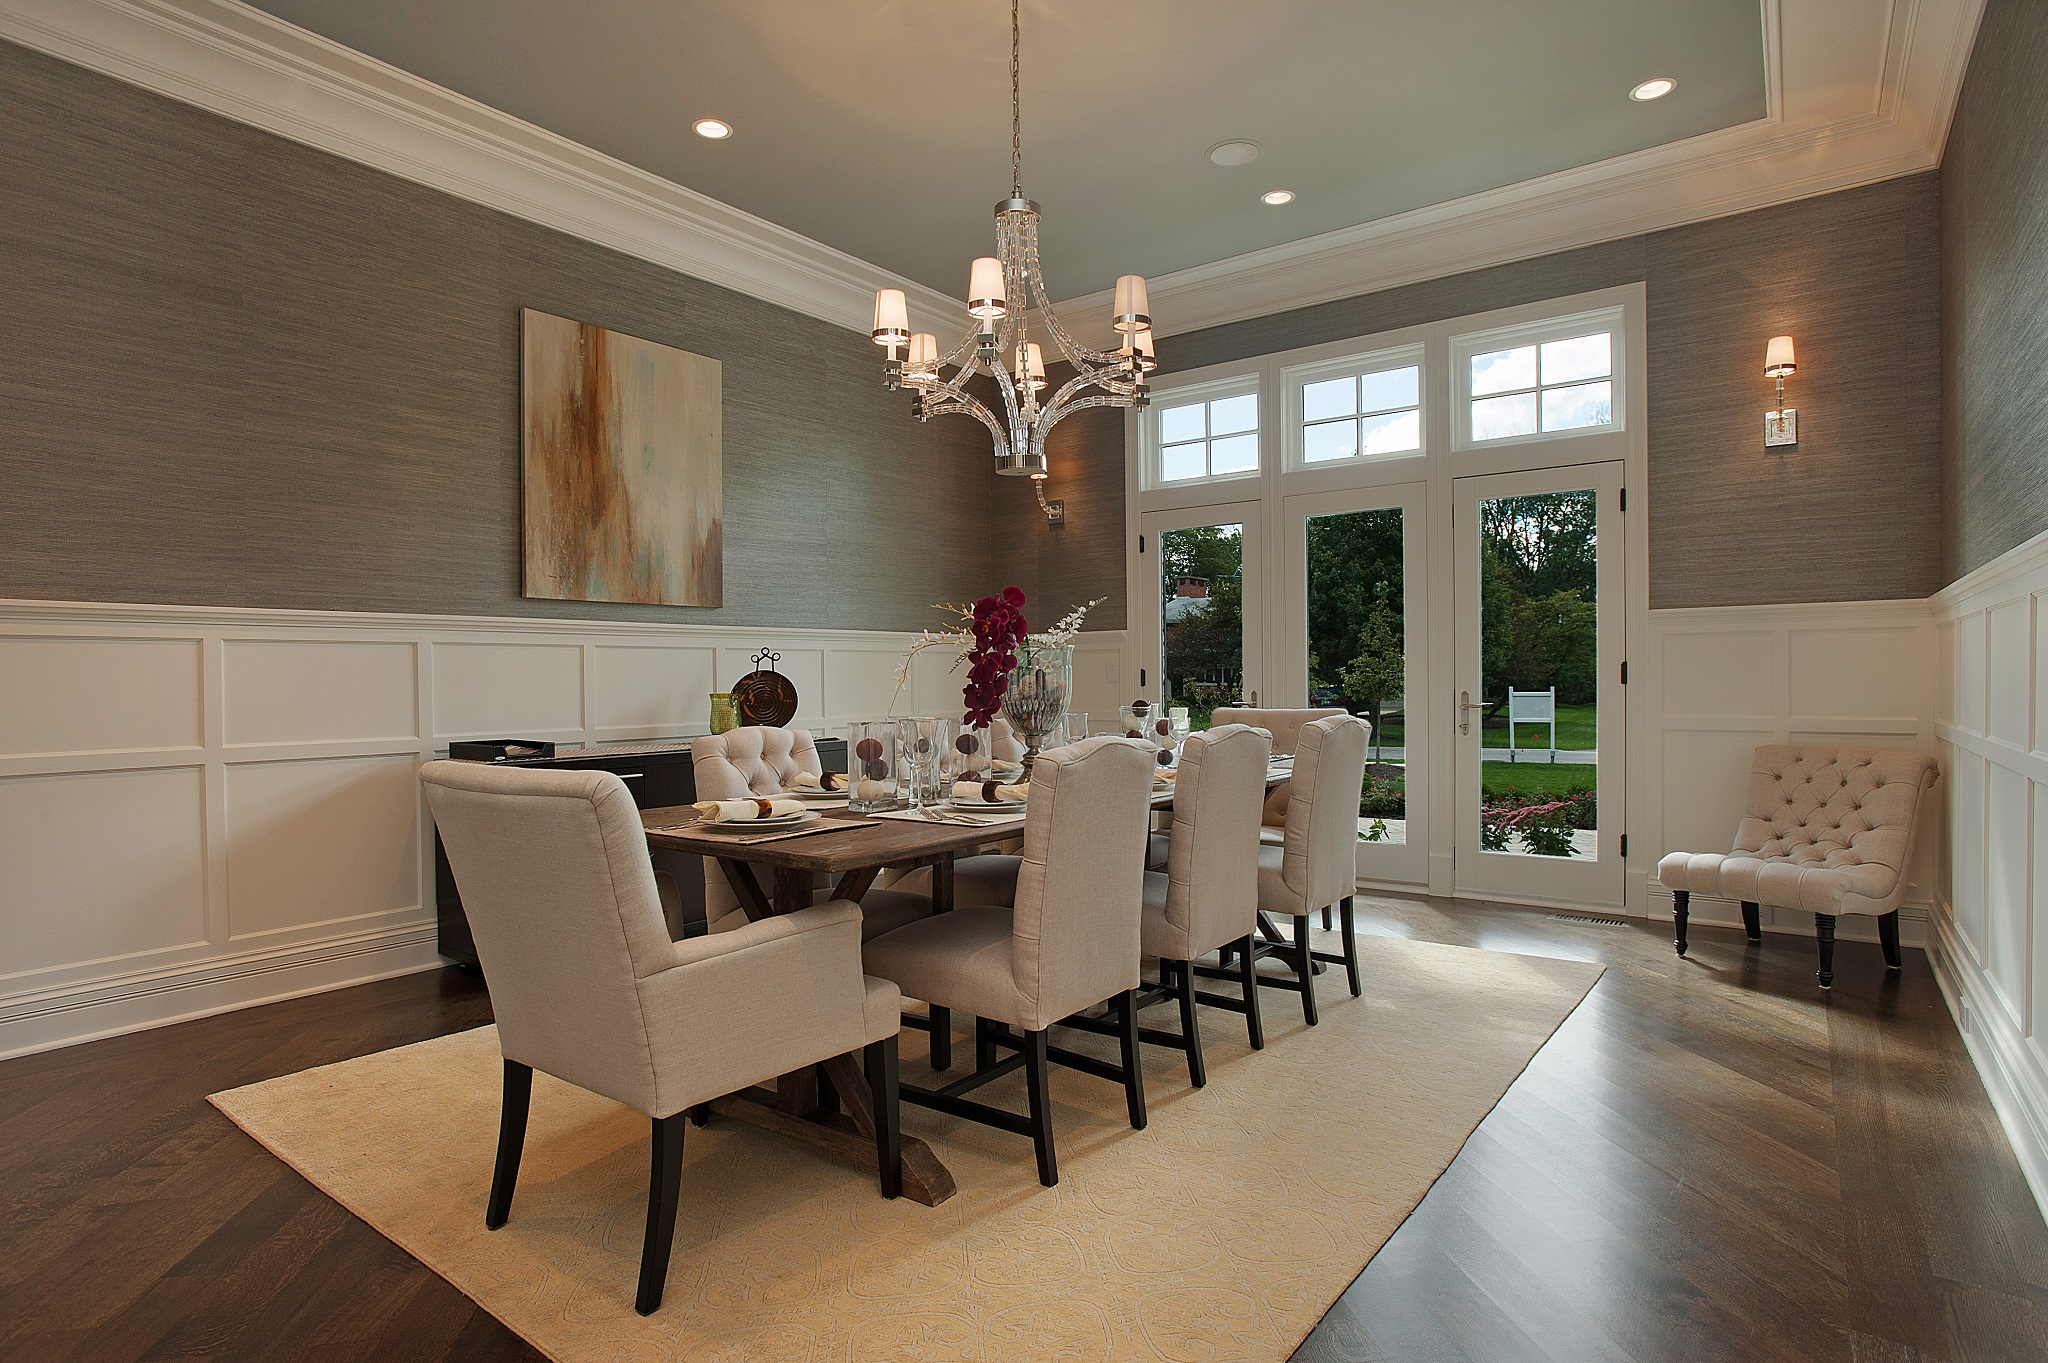 30 Best Formal Dining Room Design And Decor Ideas 828 House Decoration Ideas